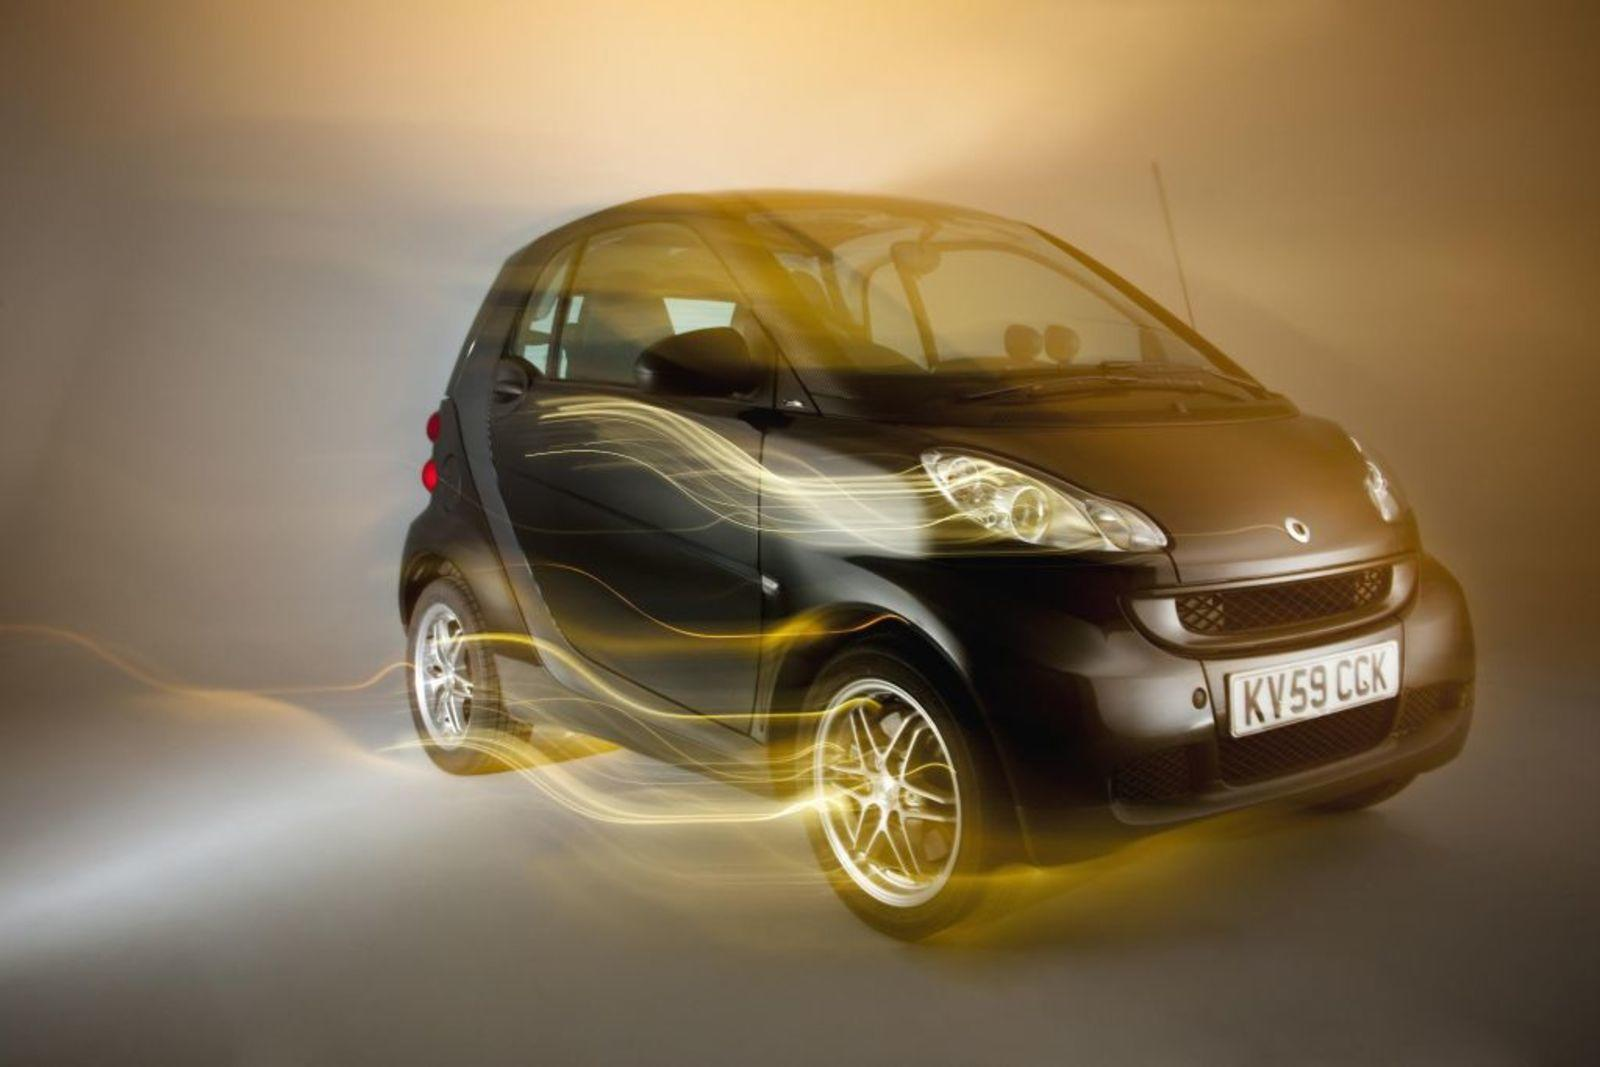 Merveilleux 2010 Smart Fortwo ICE Edition